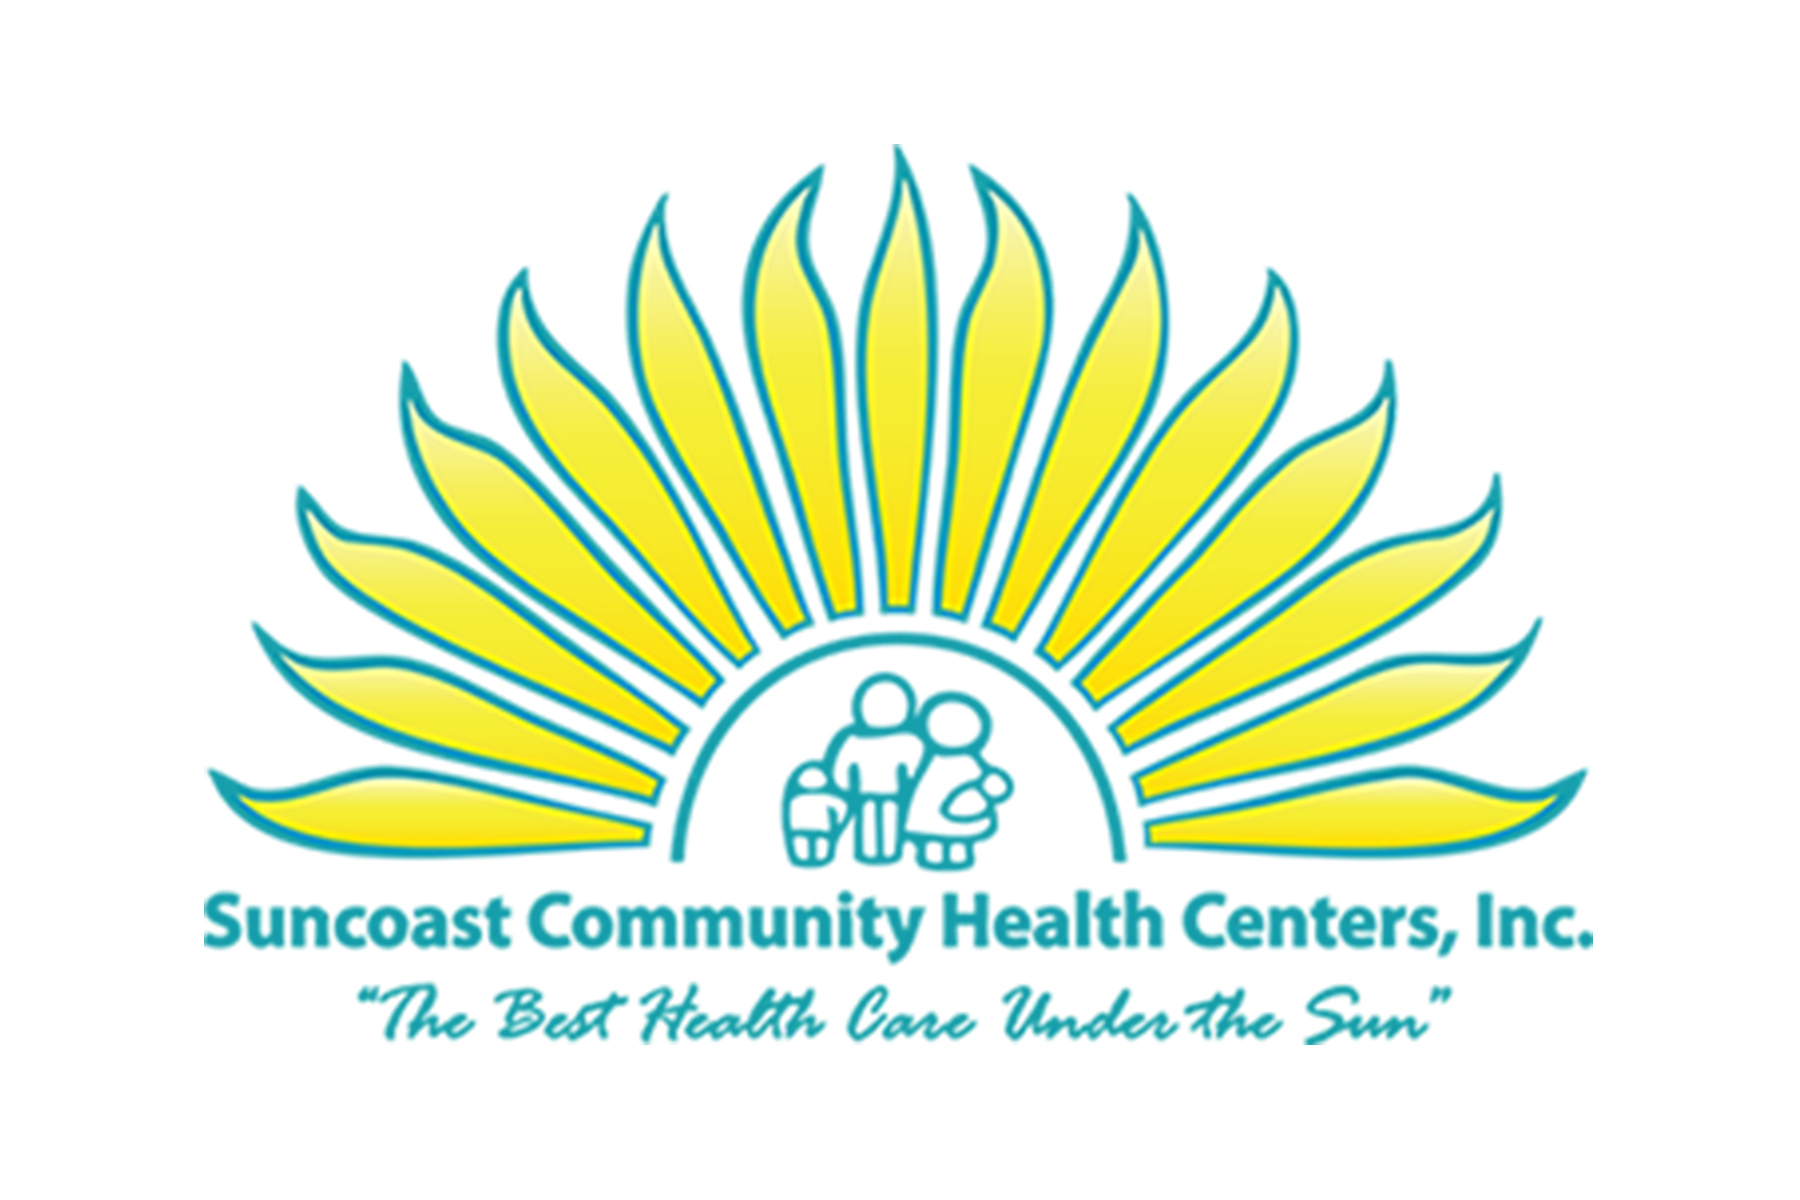 Suncoast Community Health Centers.jpg